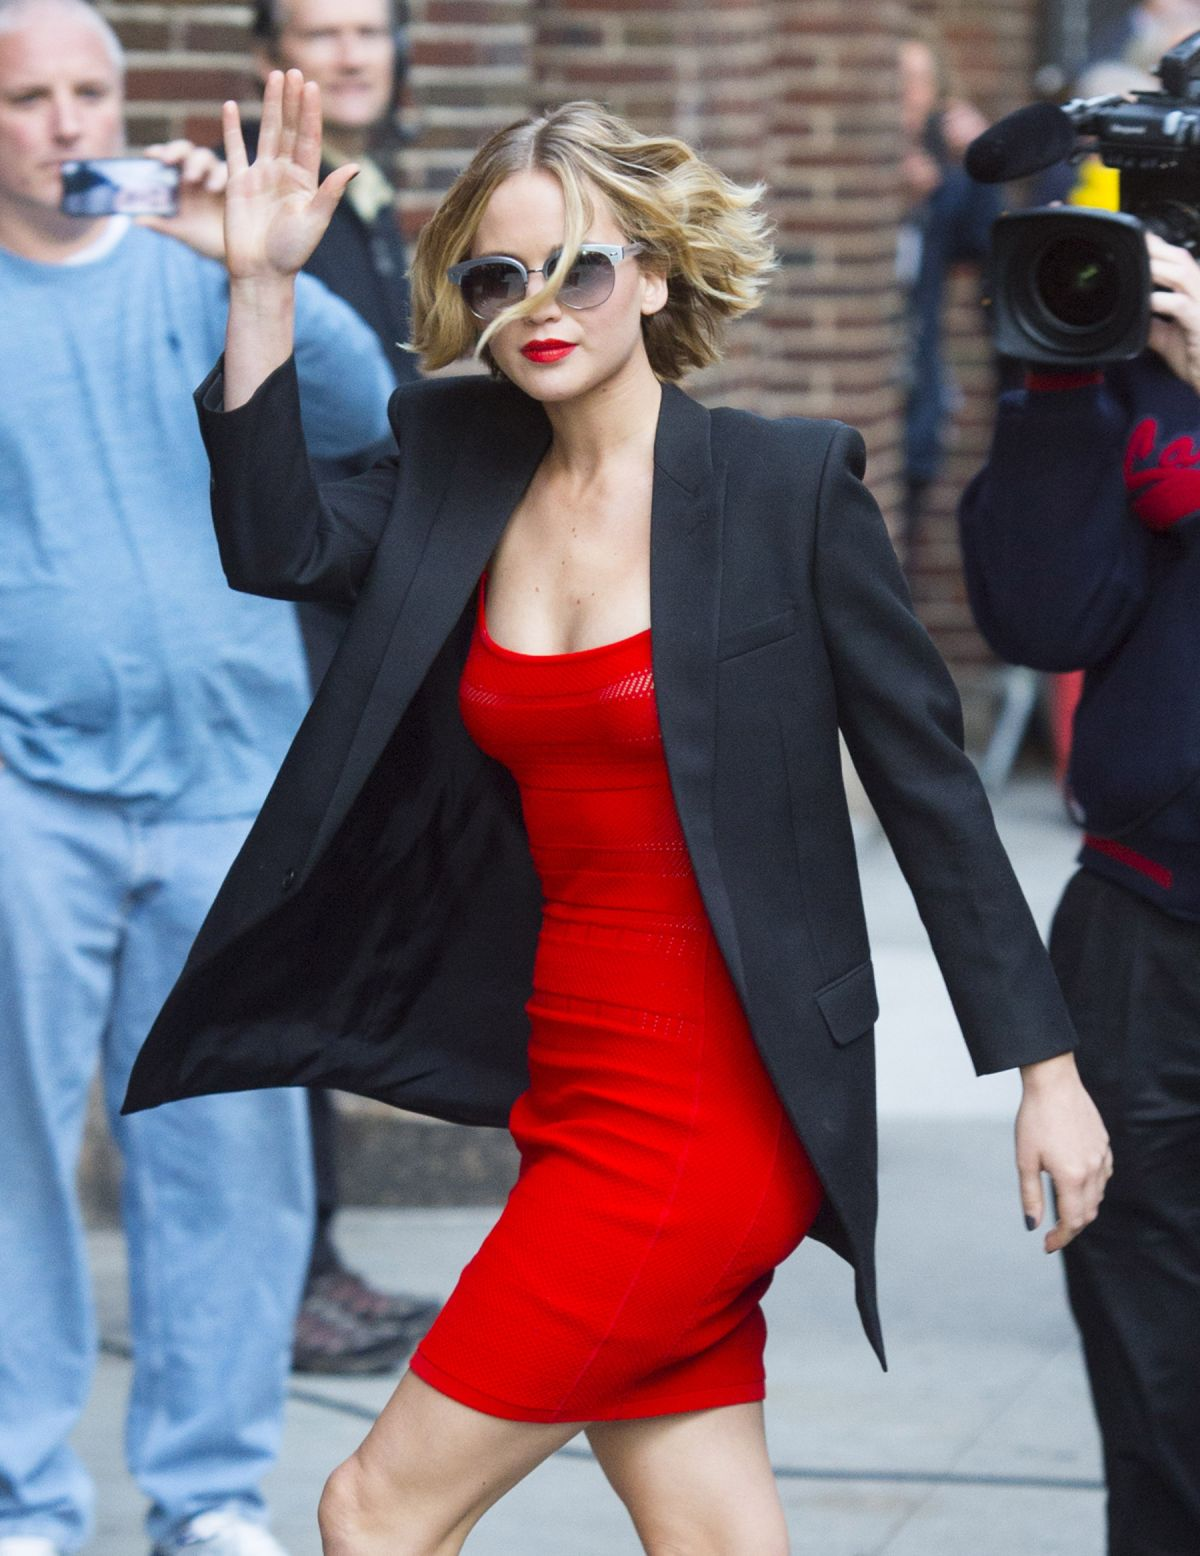 jennifer-lawrence-arrives-at-the-late-show-with-david-letterman-in-new-york_1